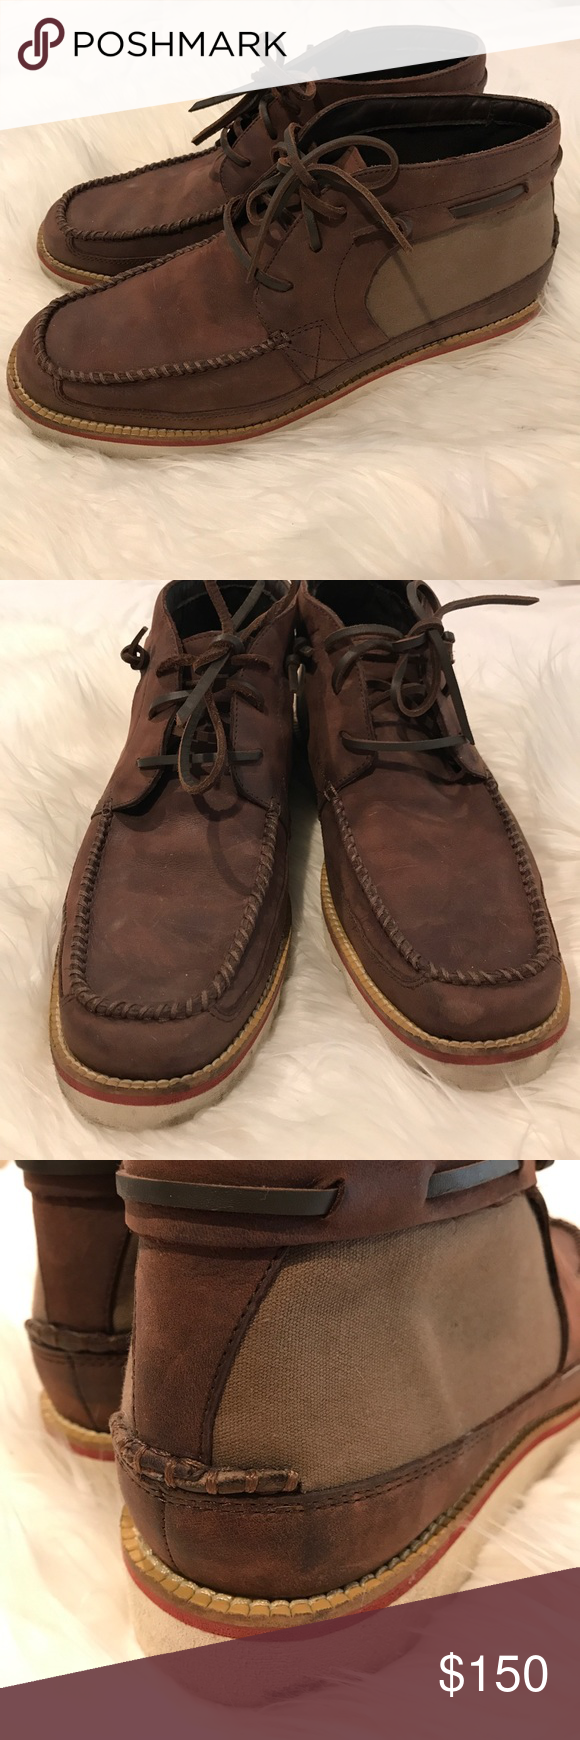 cole haan shoes 10 marks 712962